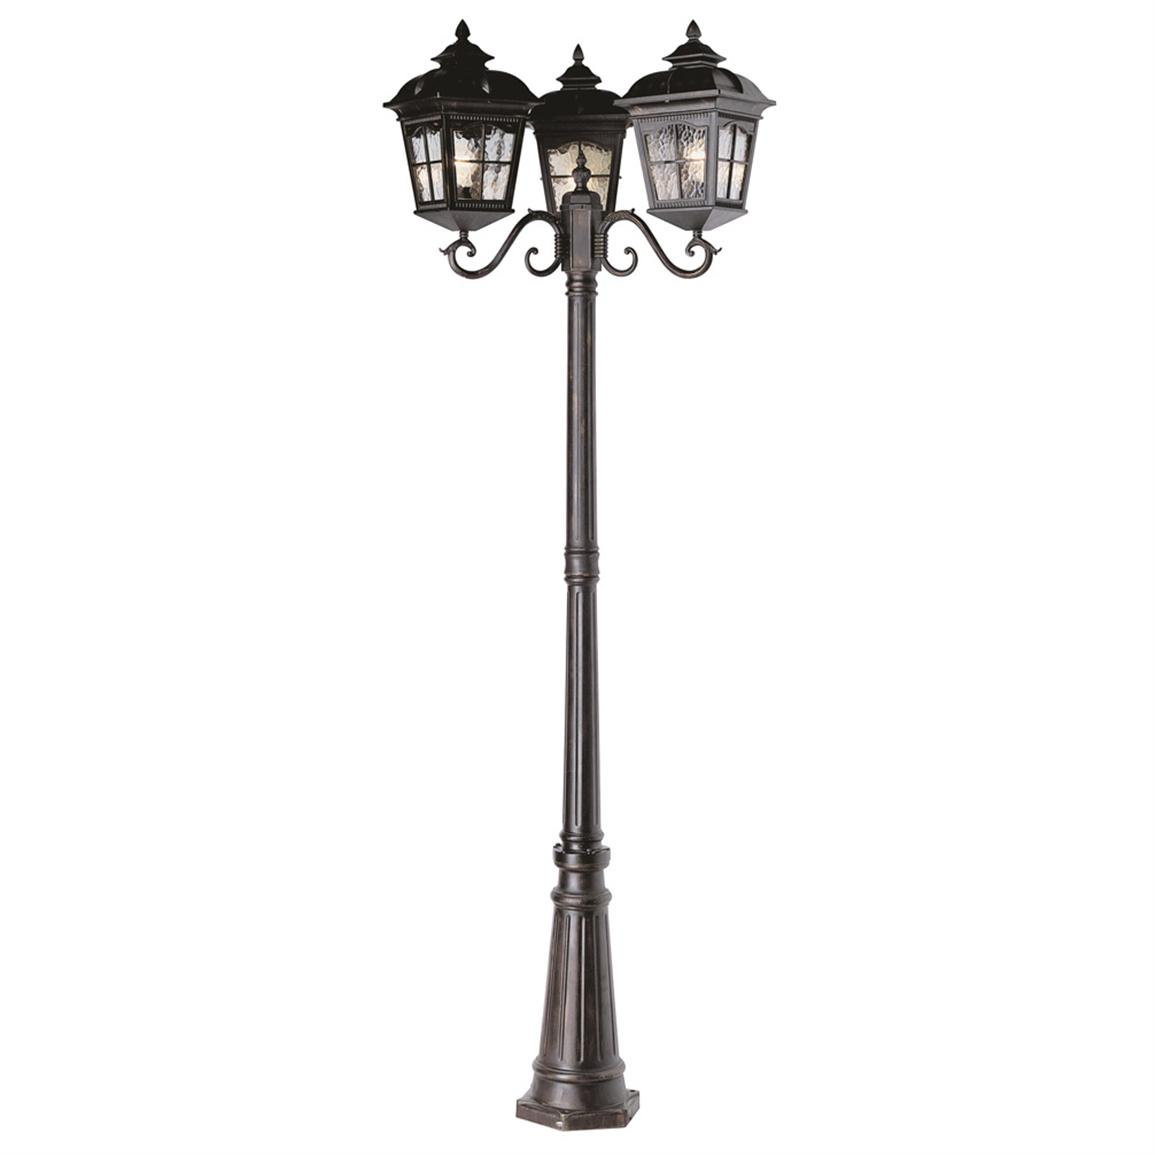 10 benefits of 3 light pole lamp | Warisan Lighting